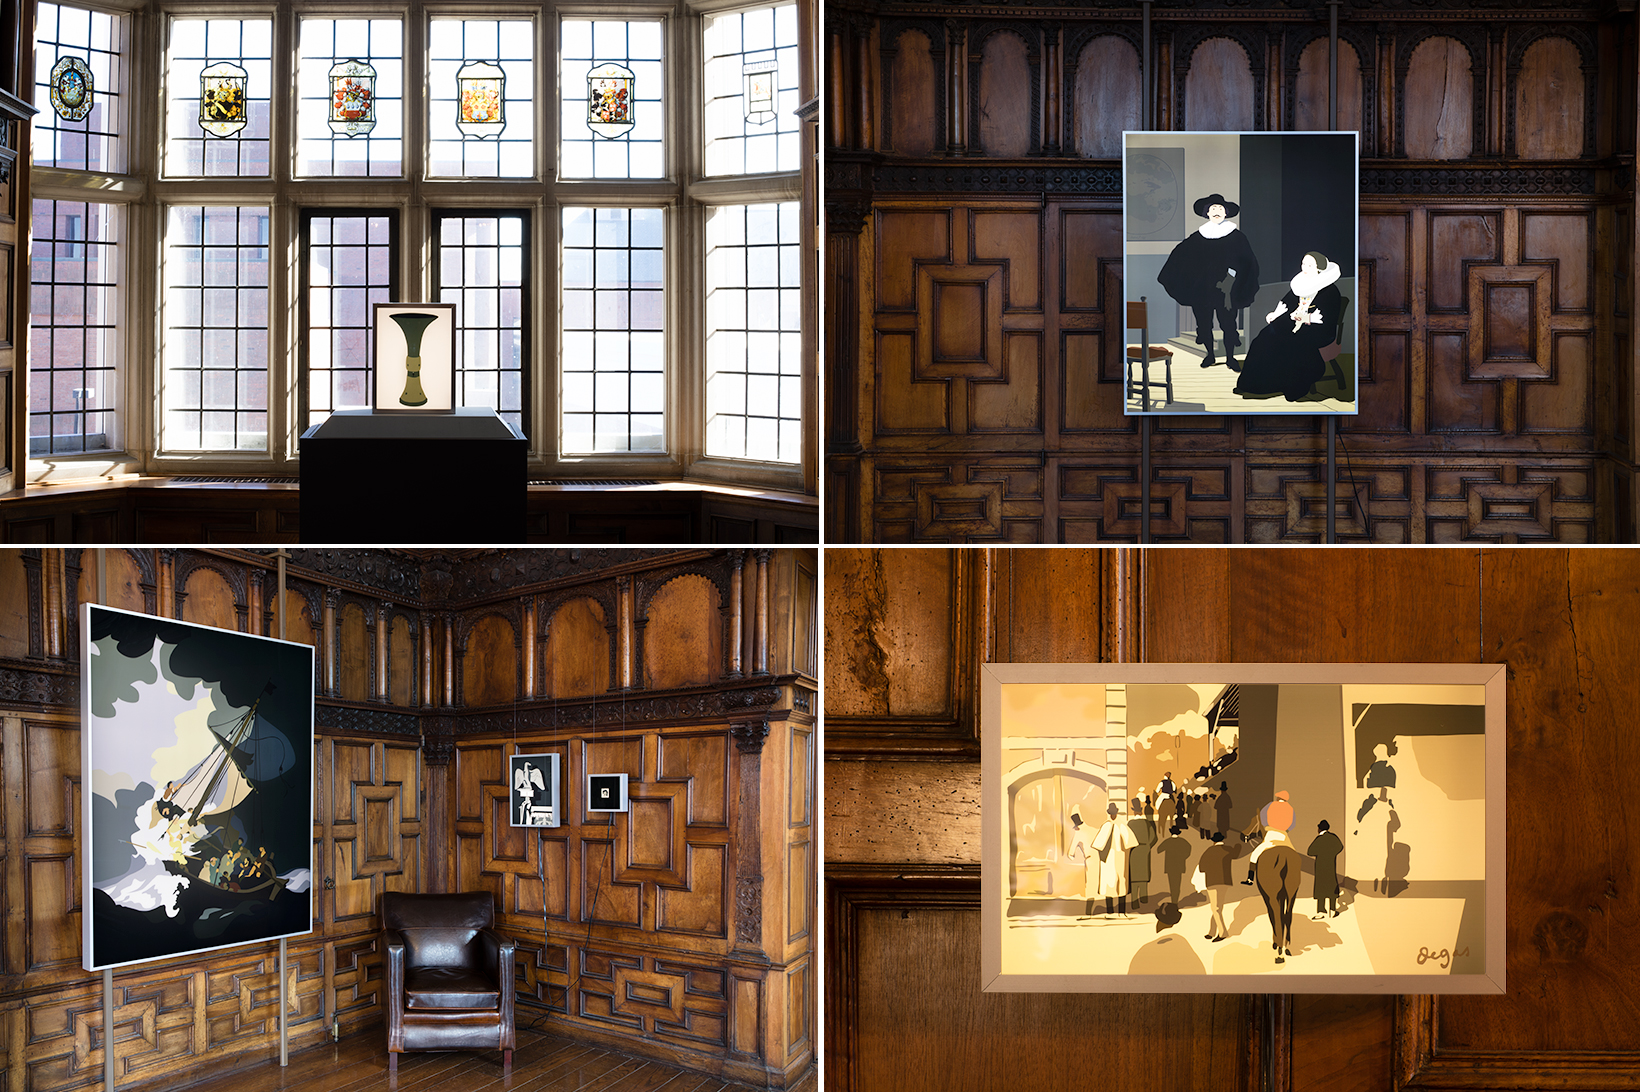 Kota Ezawa lightboxes on view in the Mead Art Museum's Rotherwas Room